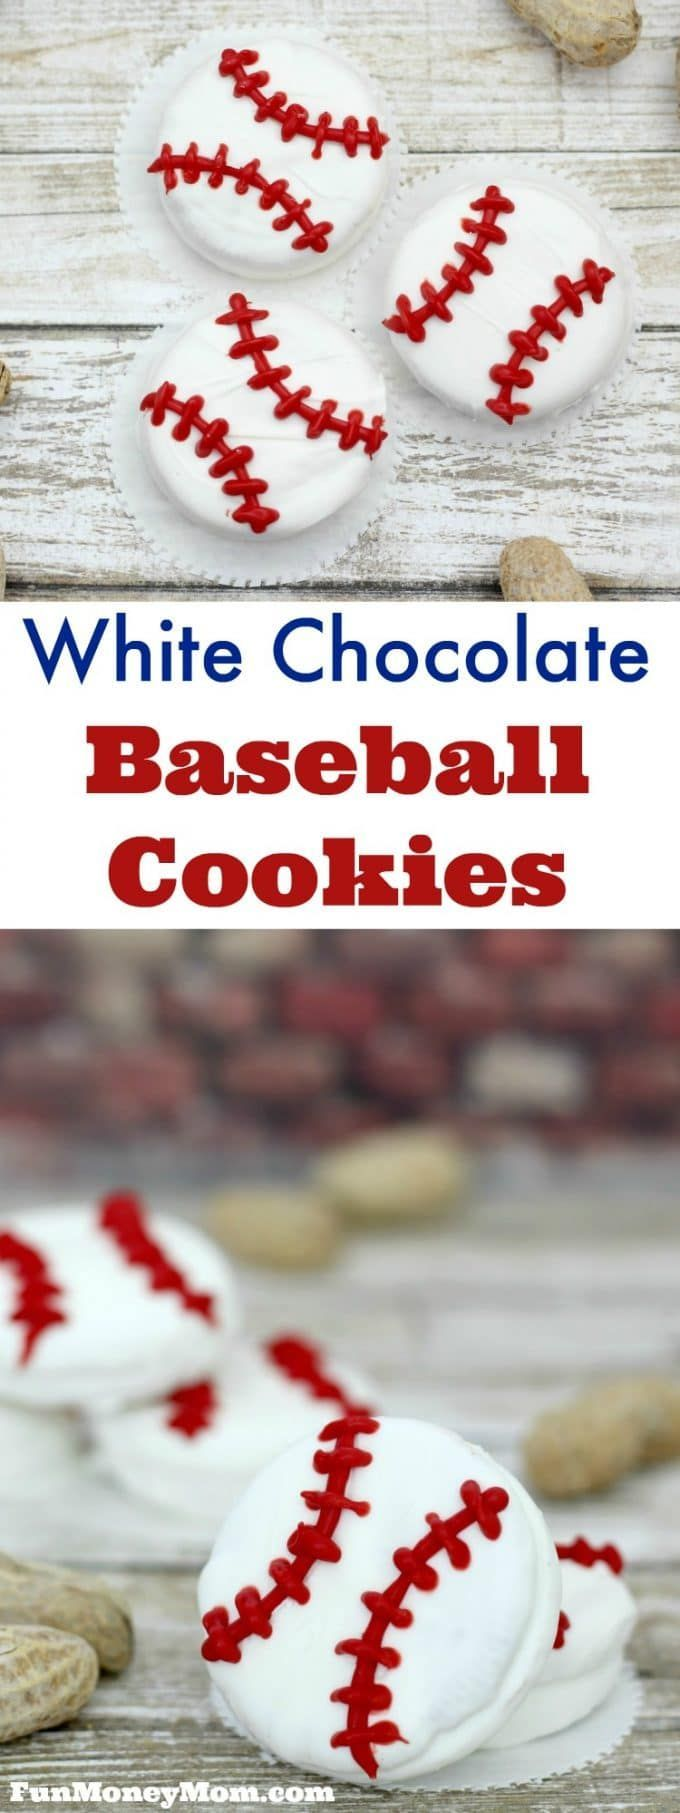 These white chocolate baseball cookies are perfect for your sports themed party, little league game or just a fun treat to enjoy while watching the game! #Baseball